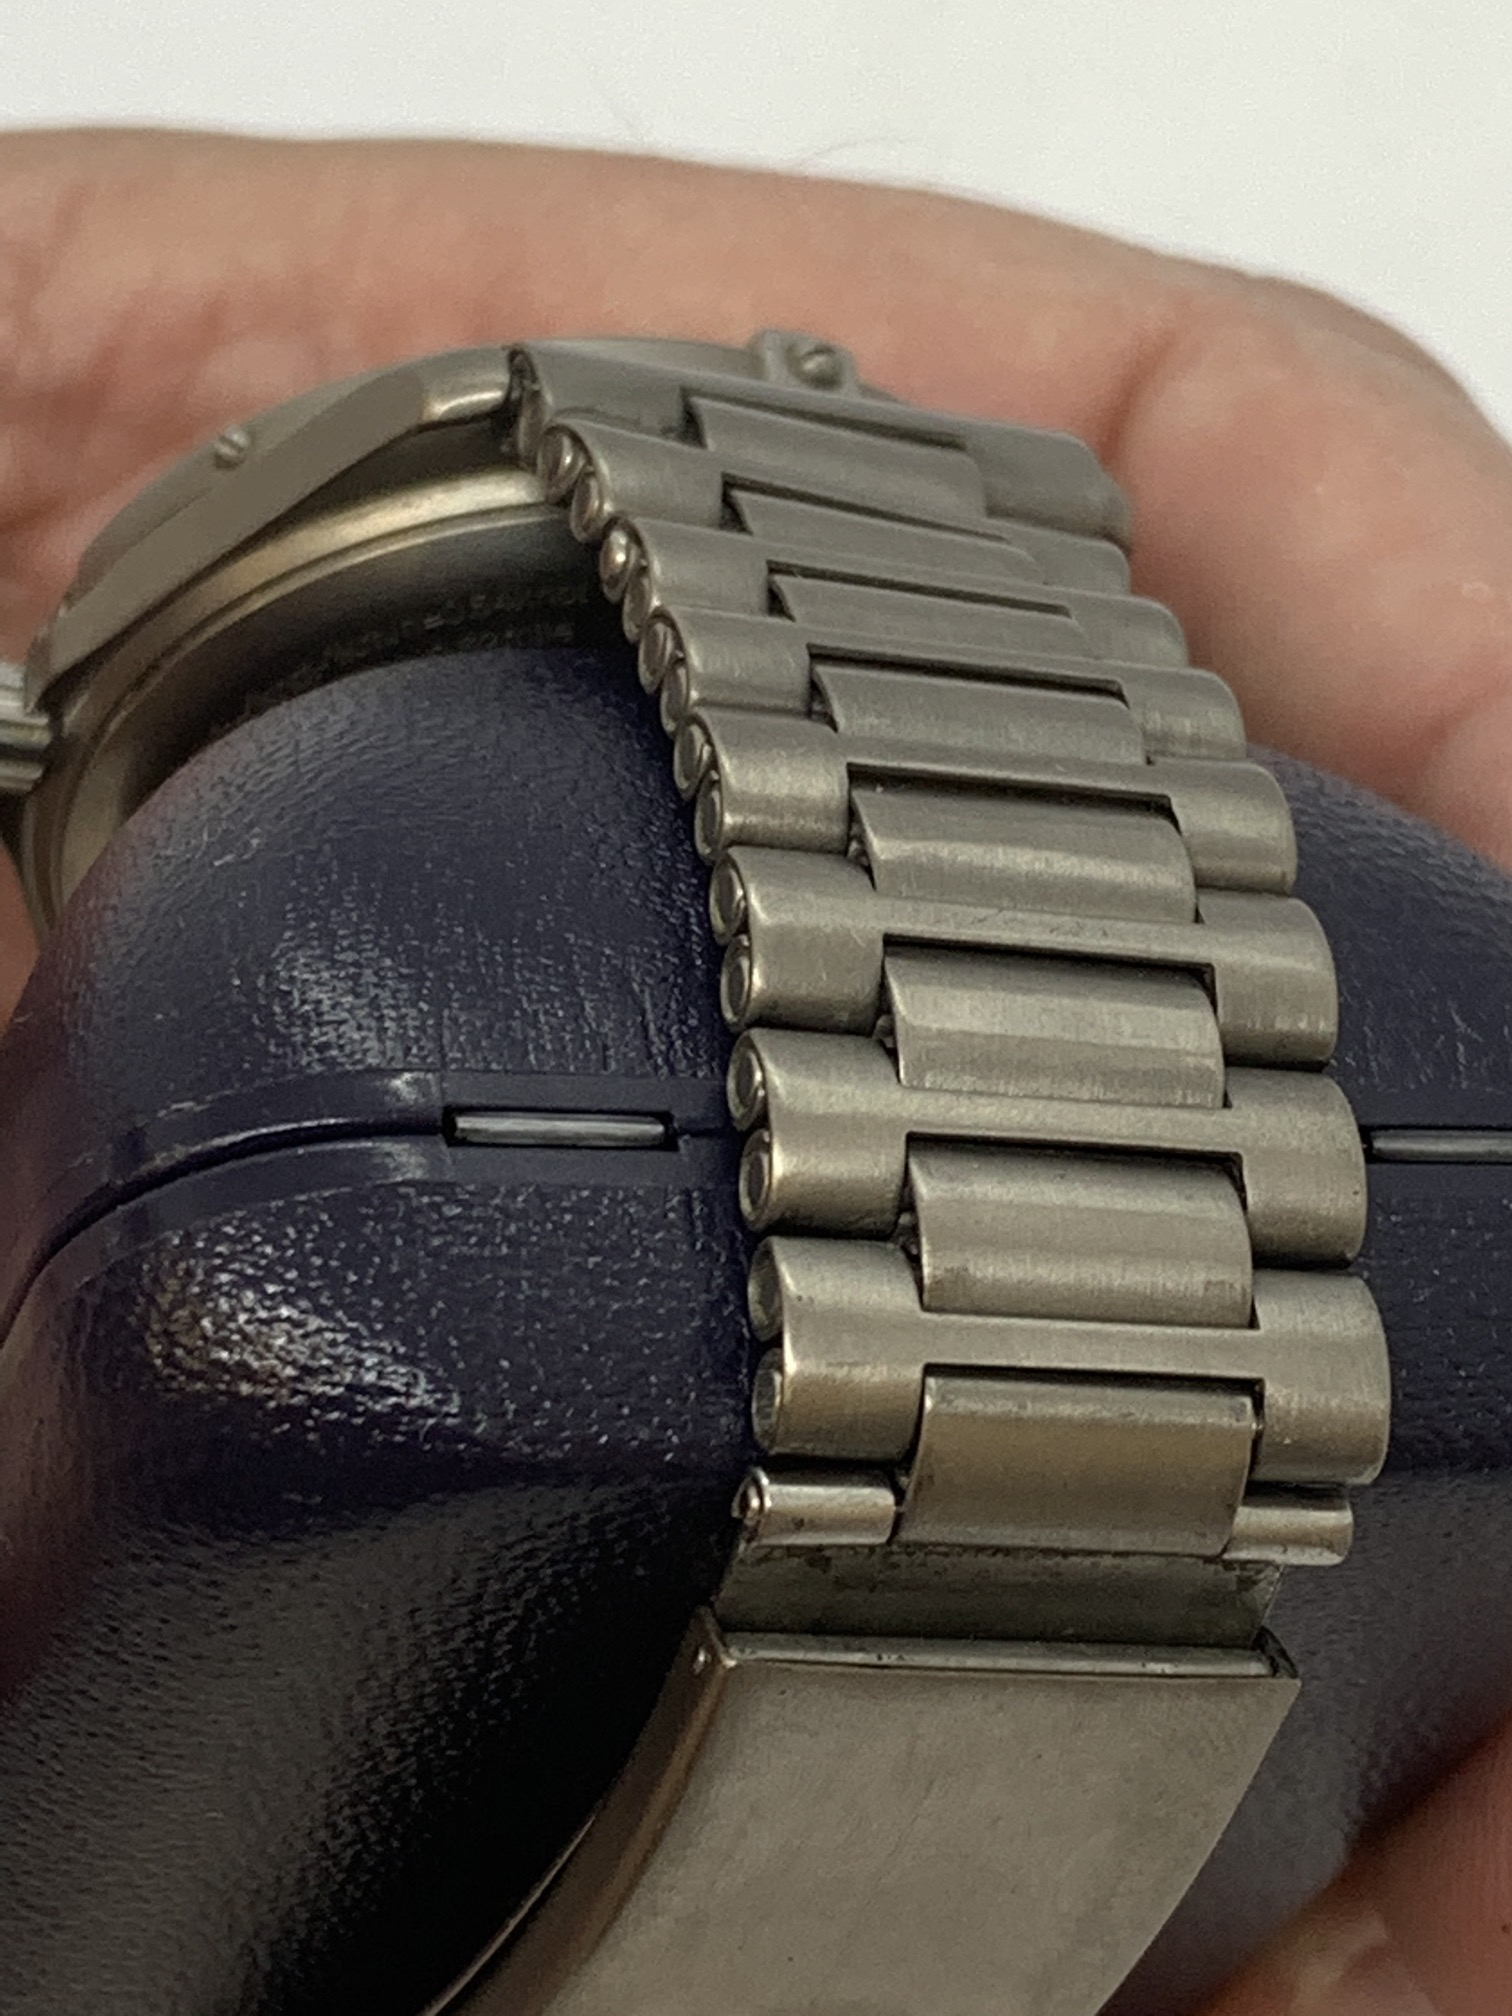 BREITLING TITANIUM WATCH A/F - Image 8 of 15